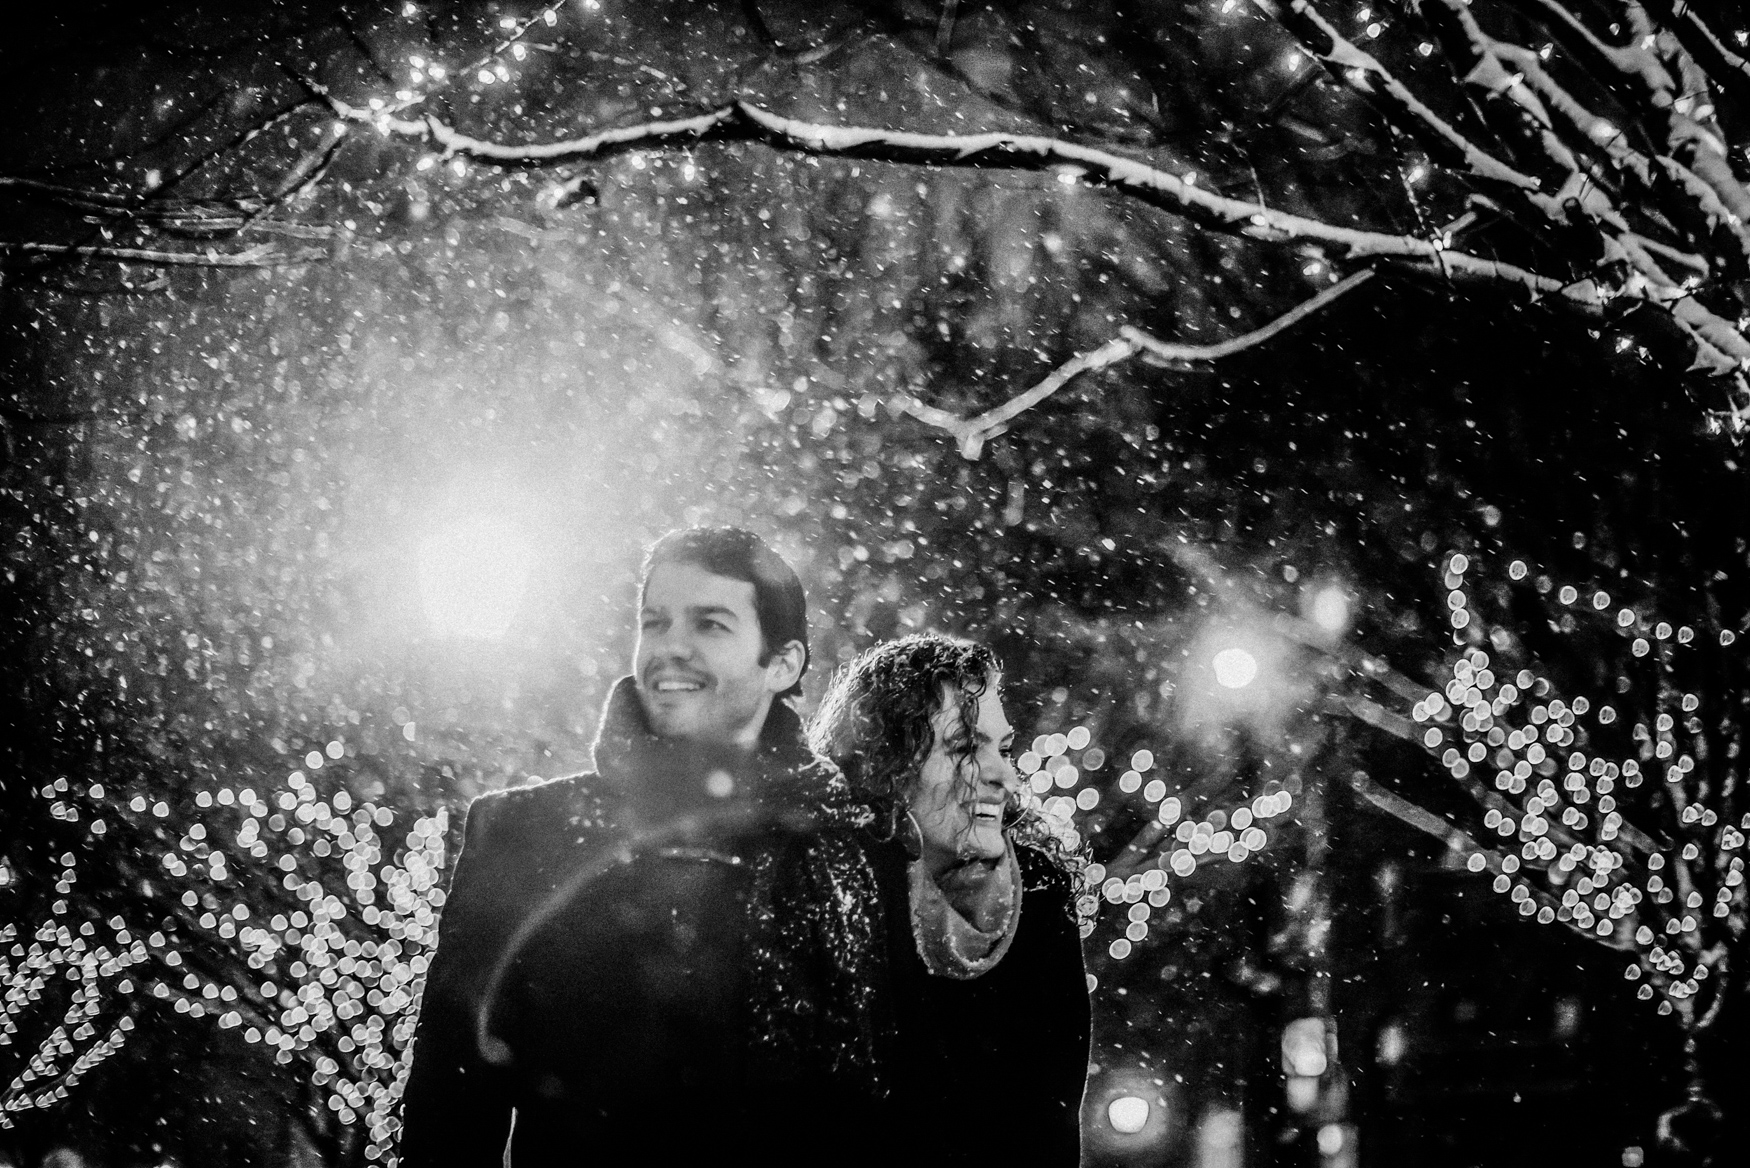 nyc winter snowy manthattan engagement session 037.jpg